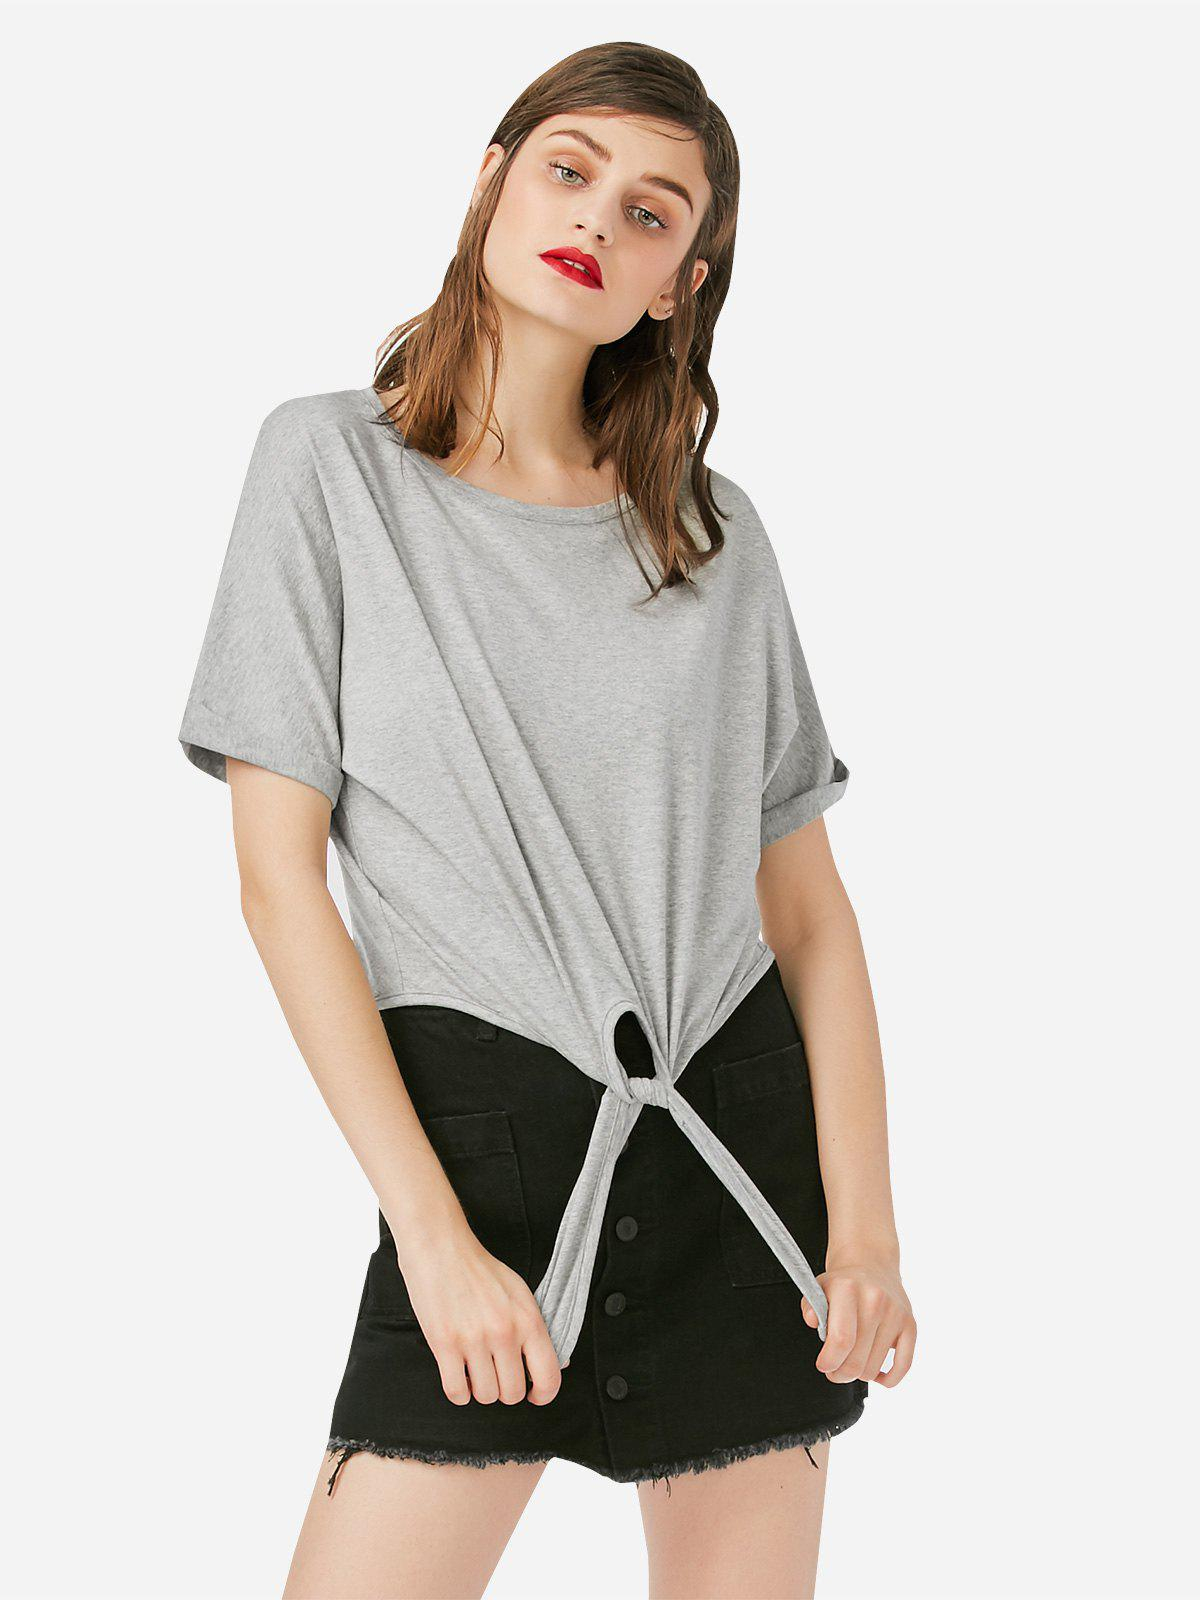 ZAN.STYLE Crew Neck Knotted T-shirt - GRAY XL